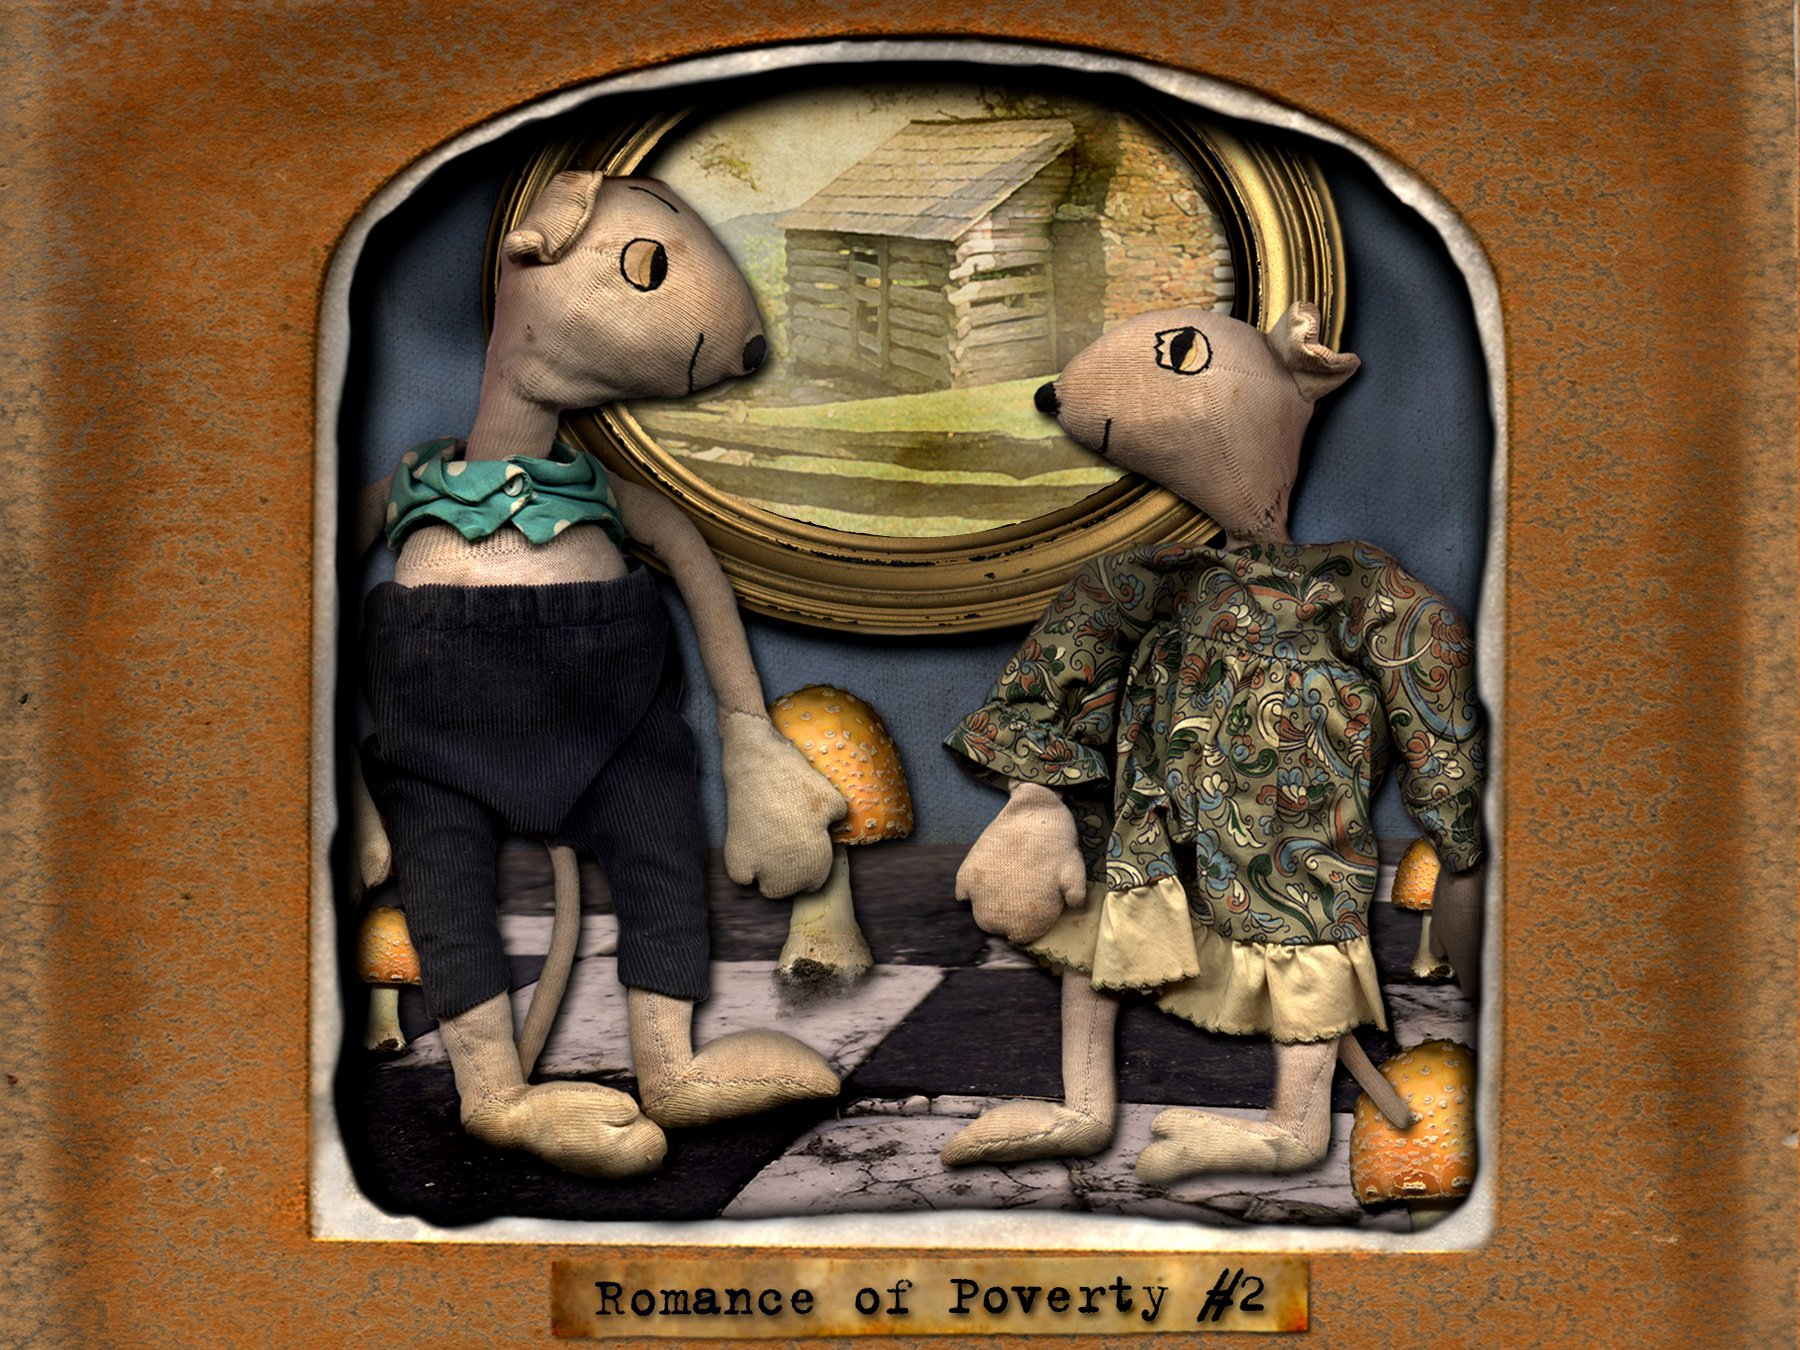 Romance of Poverty #2